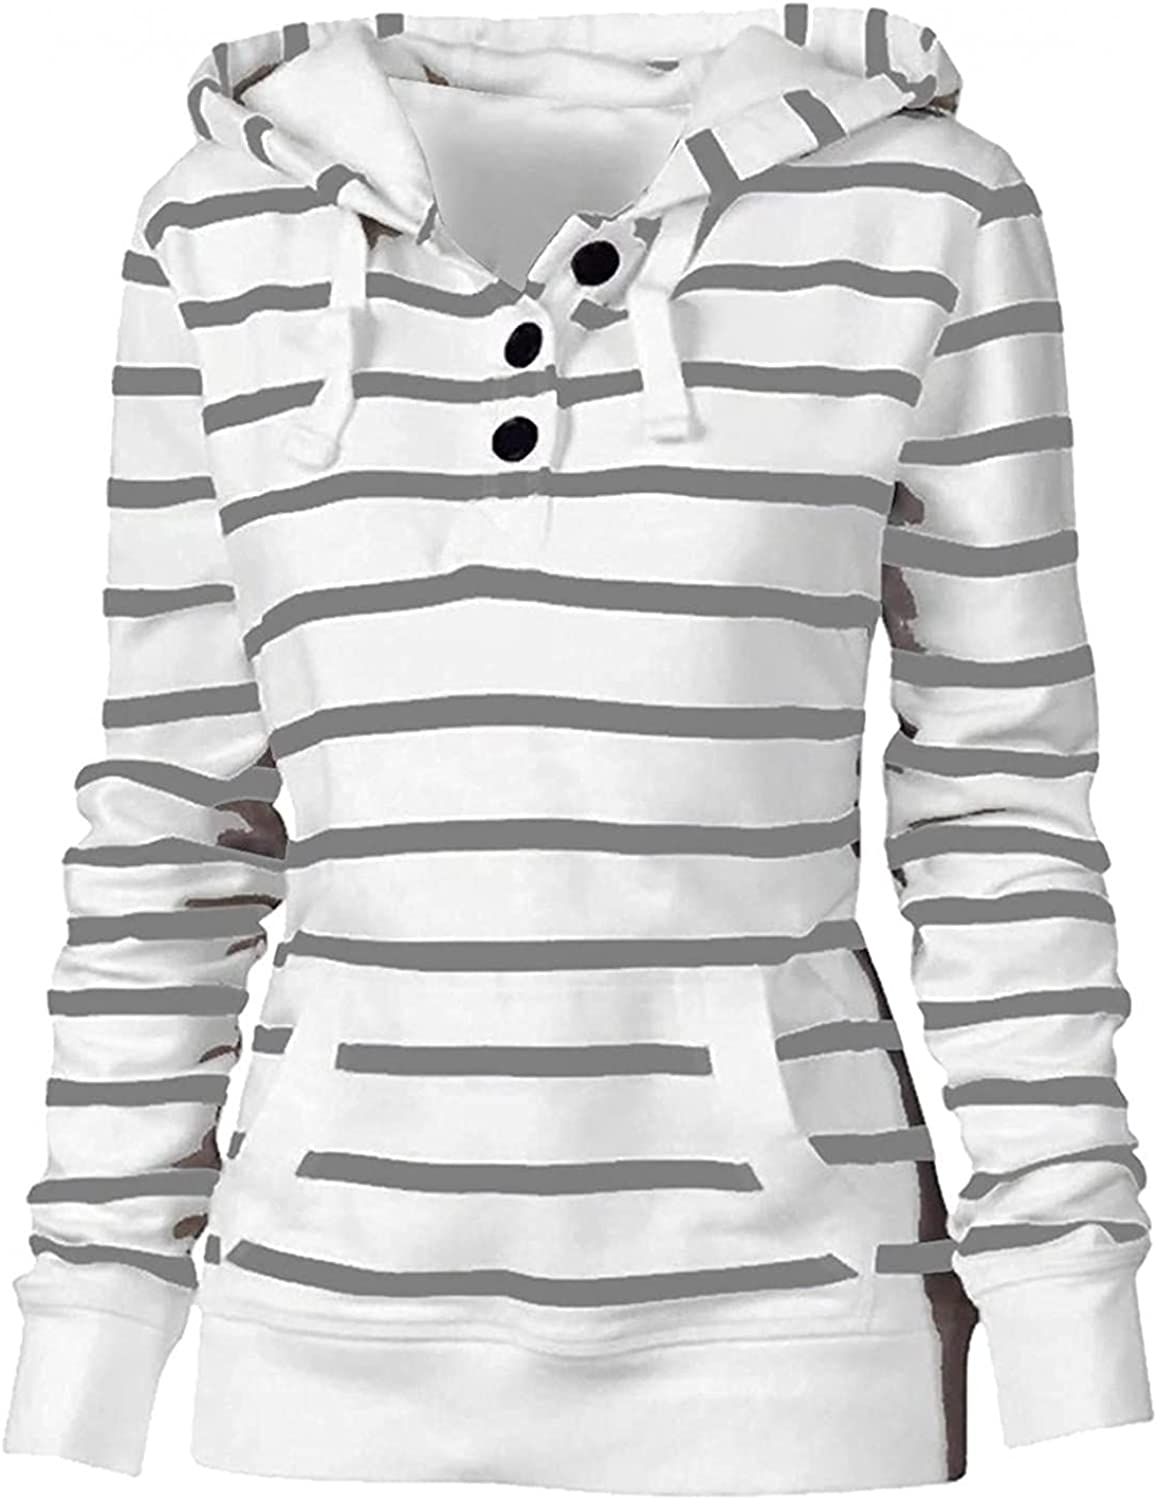 COMVALUE Womens Hoodies,Drawstring Pullover Striped Long Sleeve Button Down V Neck Casual Sweatshirts with Pocket